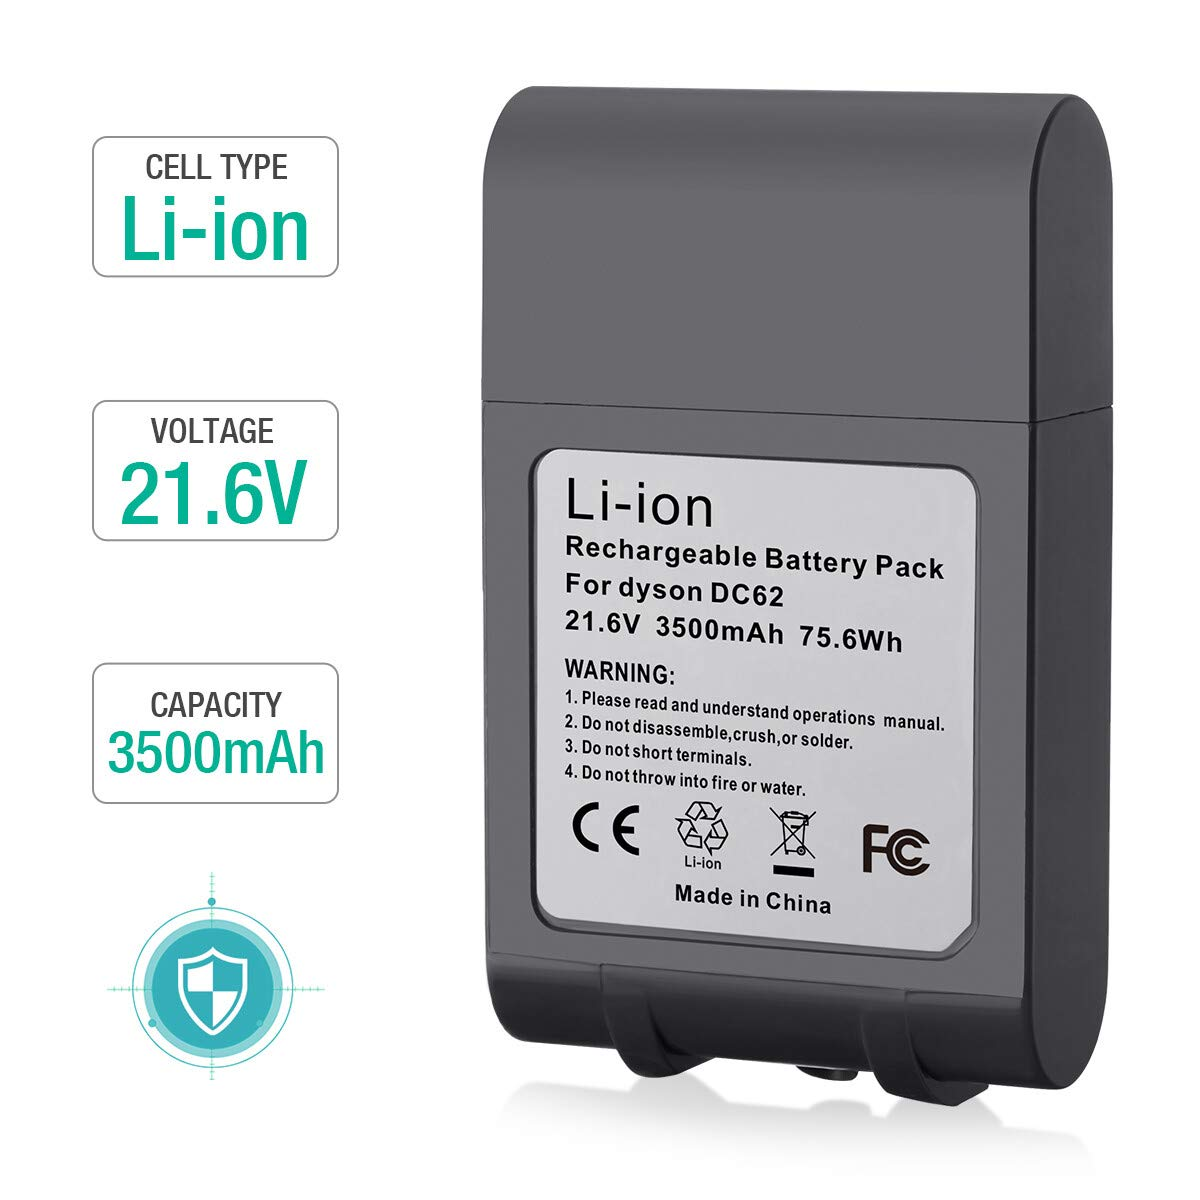 FirstPower 3.5Ah Dyson V6 Battery Replacement 21.6V Upgraded Li-ion Battery 595 650 770 880 DC58 DC59 DC61 DC62 Animal DC72 Series Handheld Dyson Battery